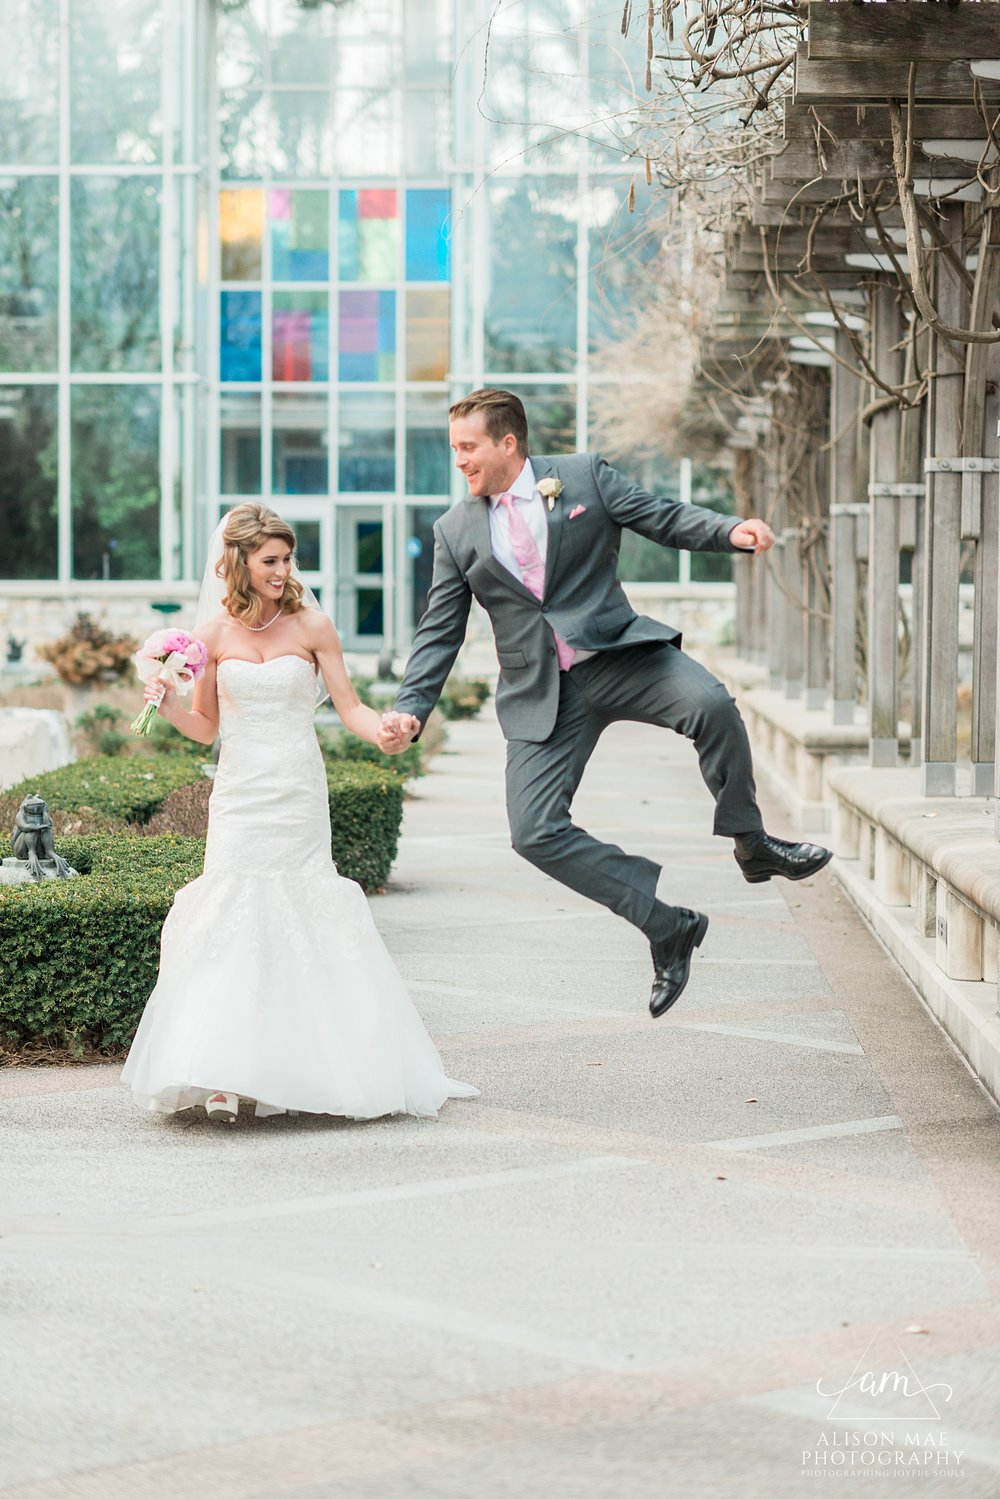 Fun Colorful Joyful Indiana Wedding Photographer - Indianapolis - Alison Mae Photography_2072.jpg